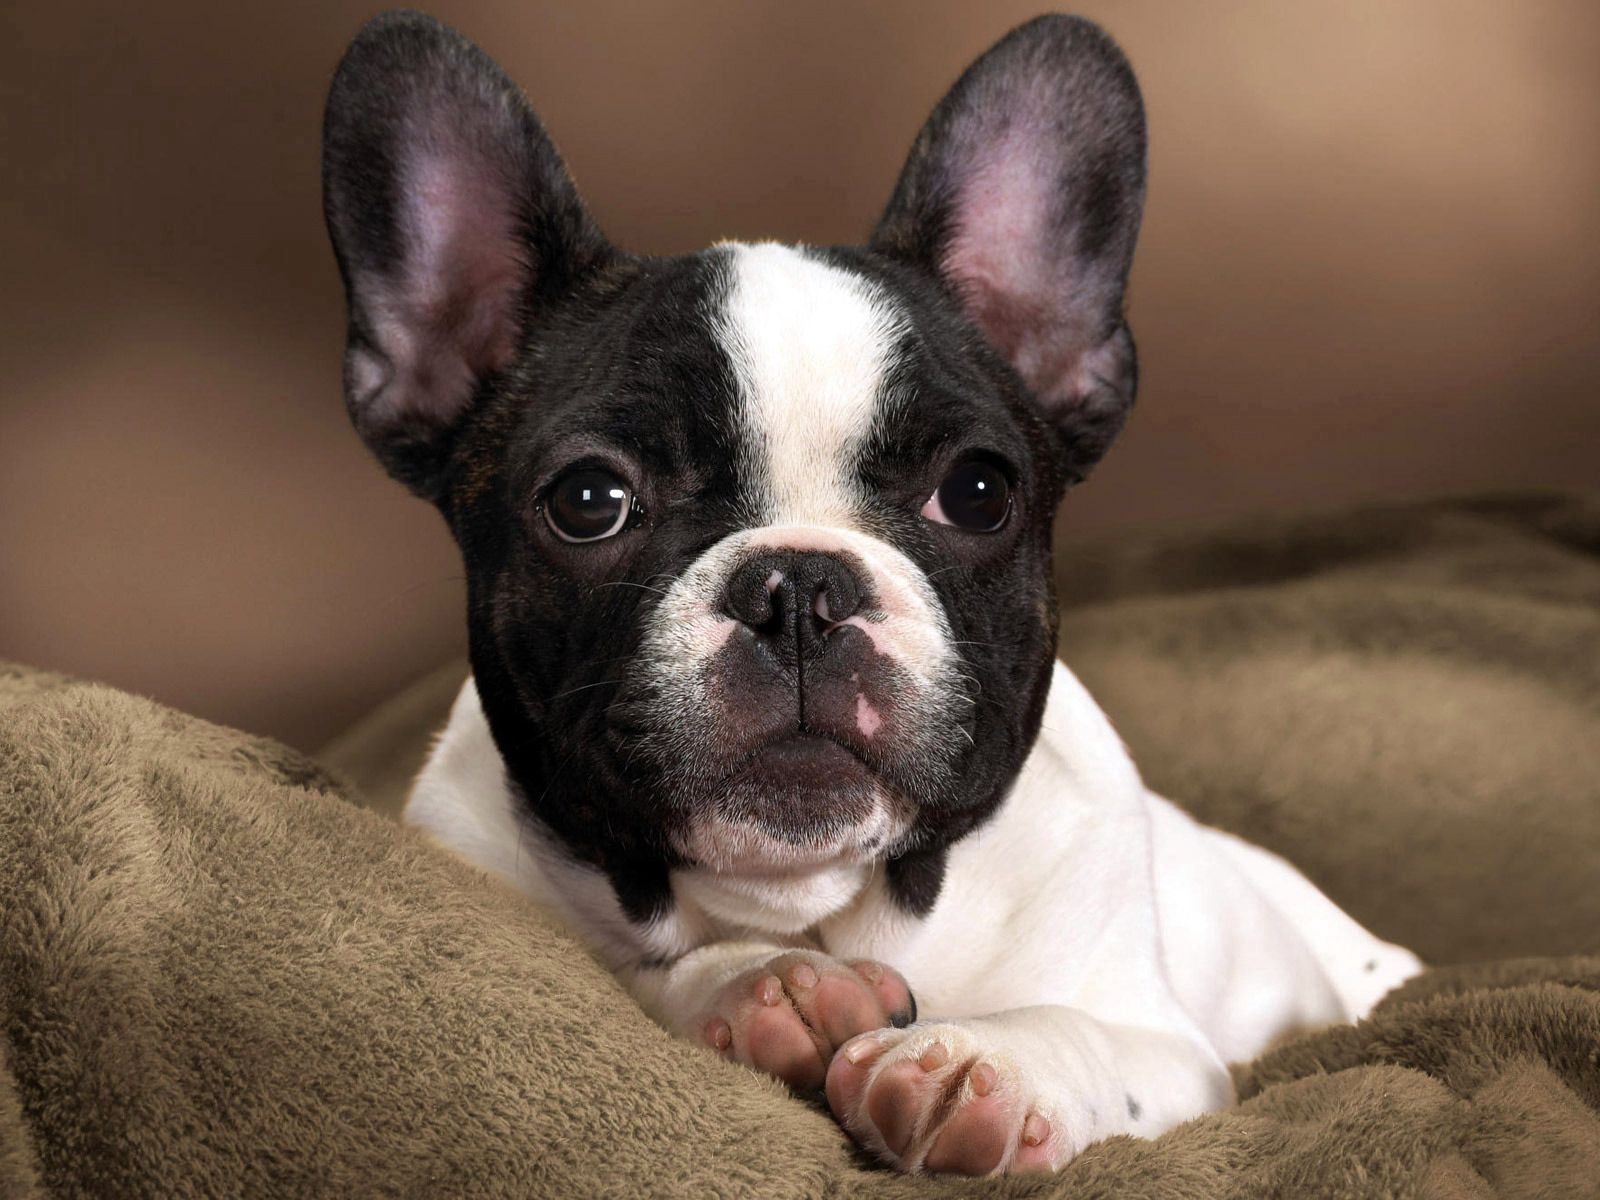 62614 download wallpaper Animals, Dog, Muzzle, Bulldog, Spotted, Spotty screensavers and pictures for free